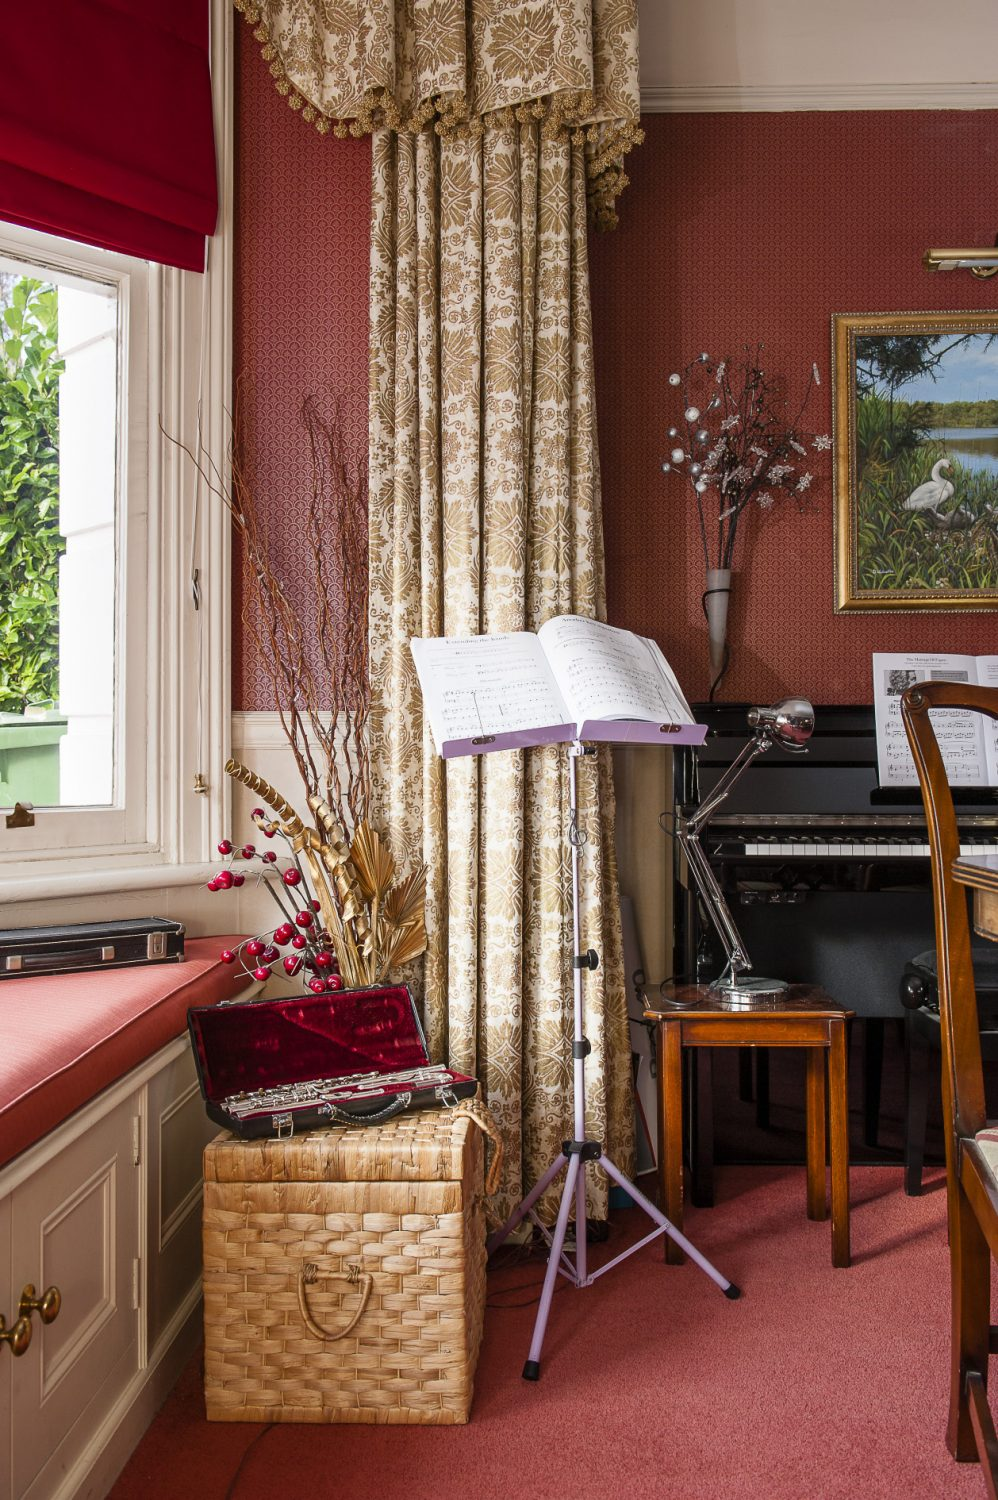 A piano and musical instruments nestle in one corner of the dining room